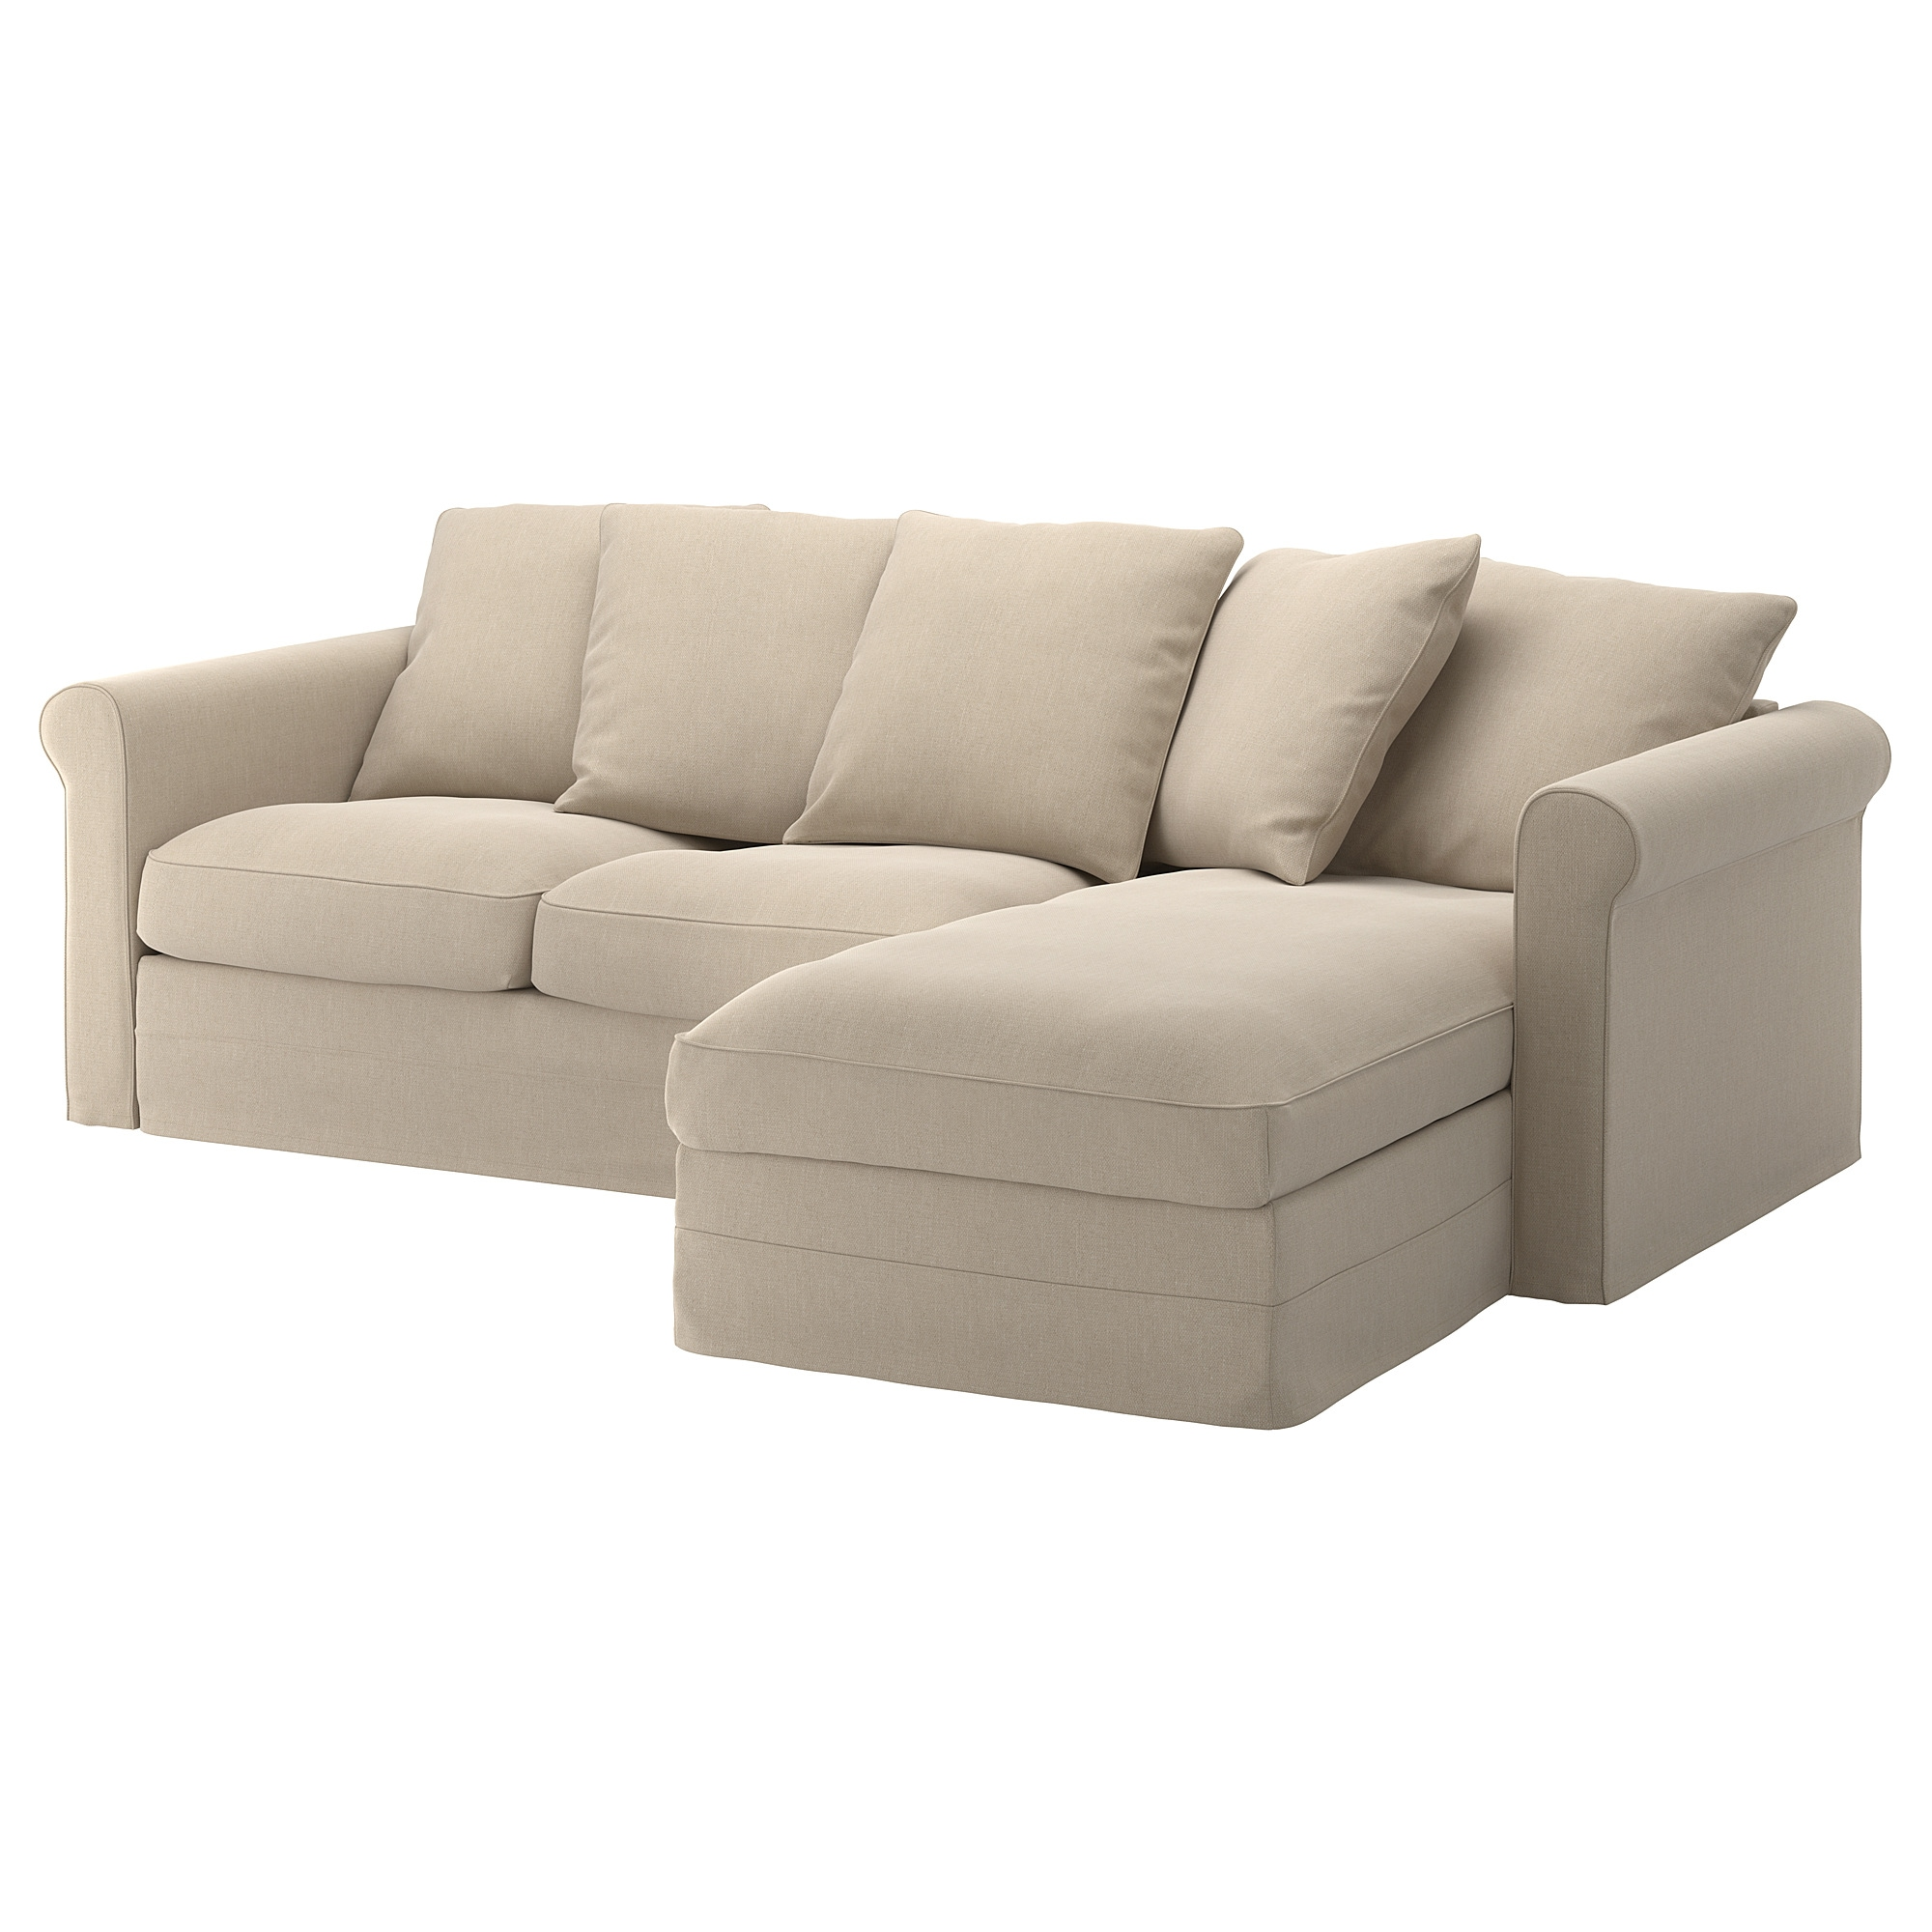 3 Seat Sofa GrÖnlid With Chaise Longue Sporda Natural